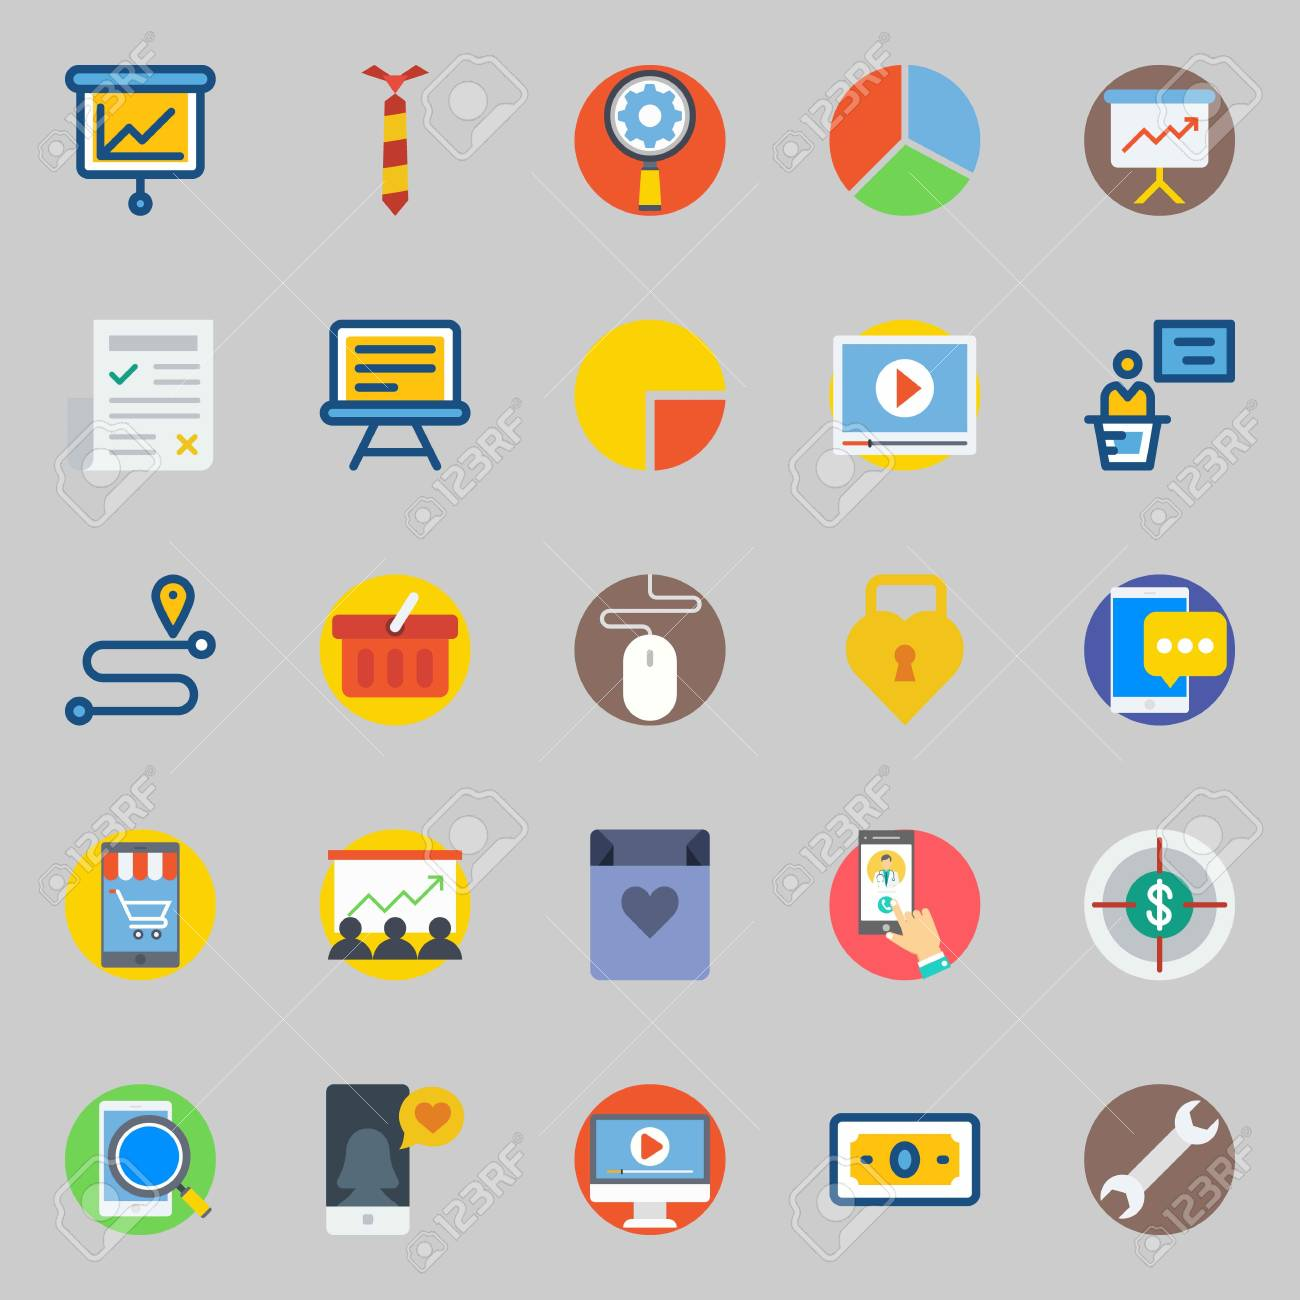 Icon set about digital marketing  with route, video player, settings,